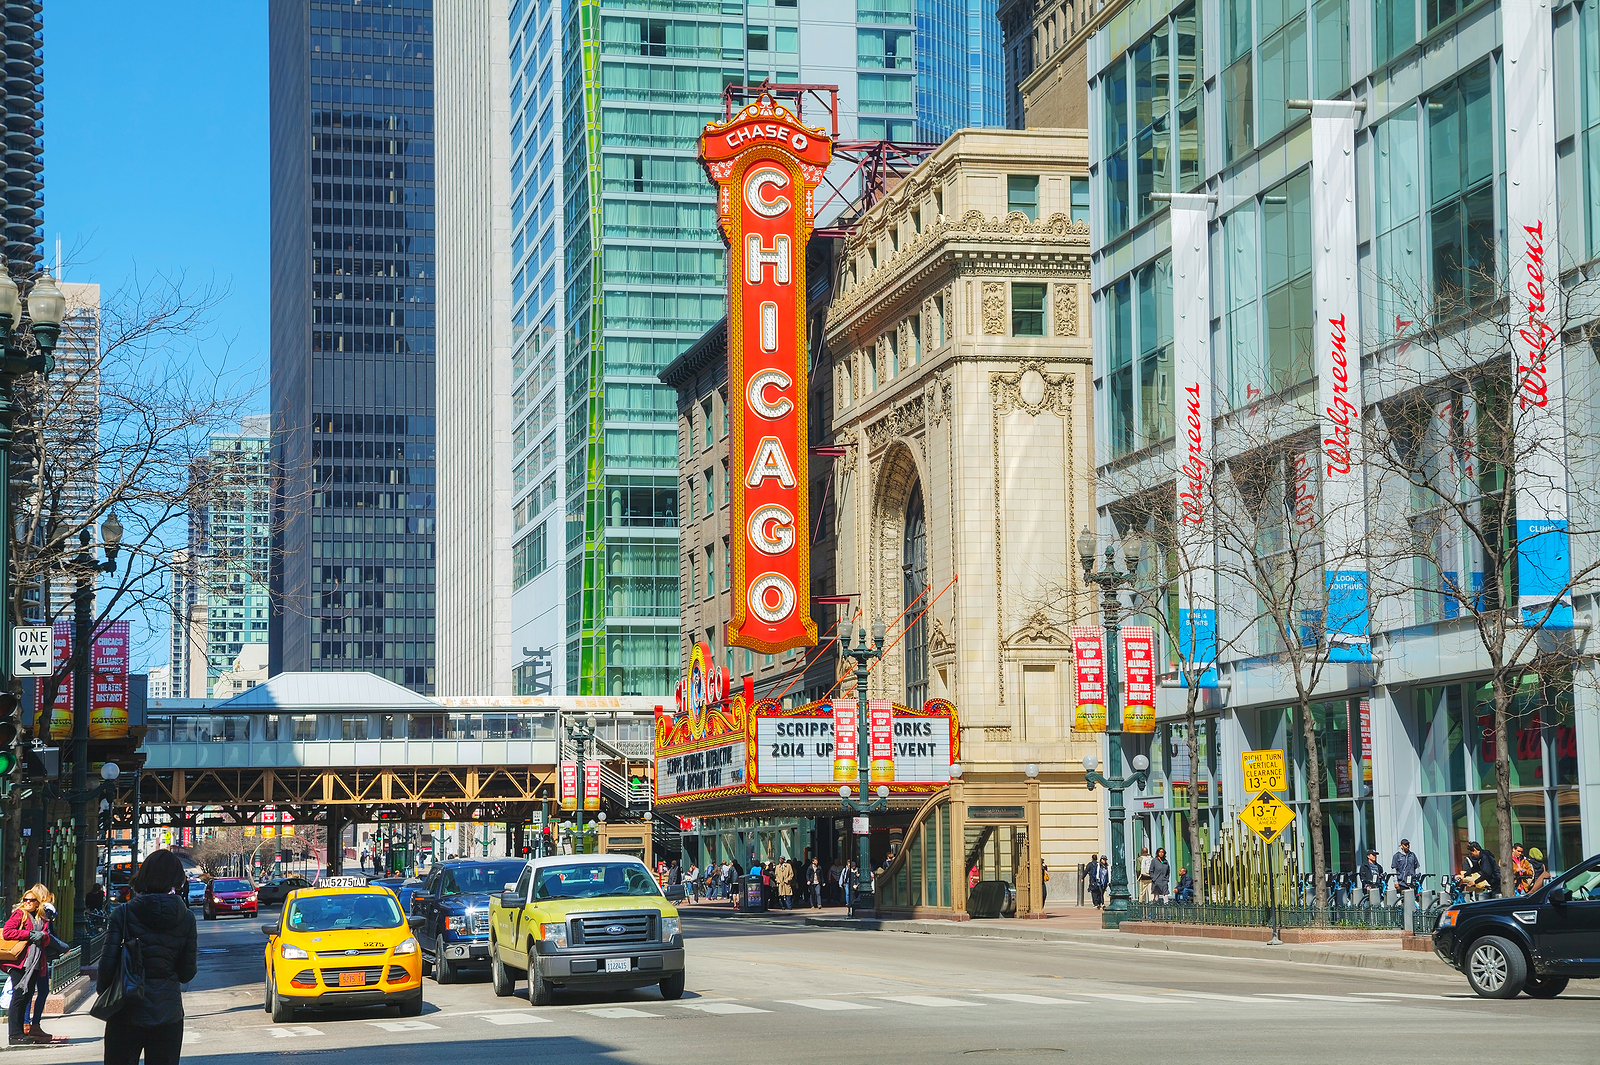 Fine Art Services in Chicago to Transport Your Art Safely